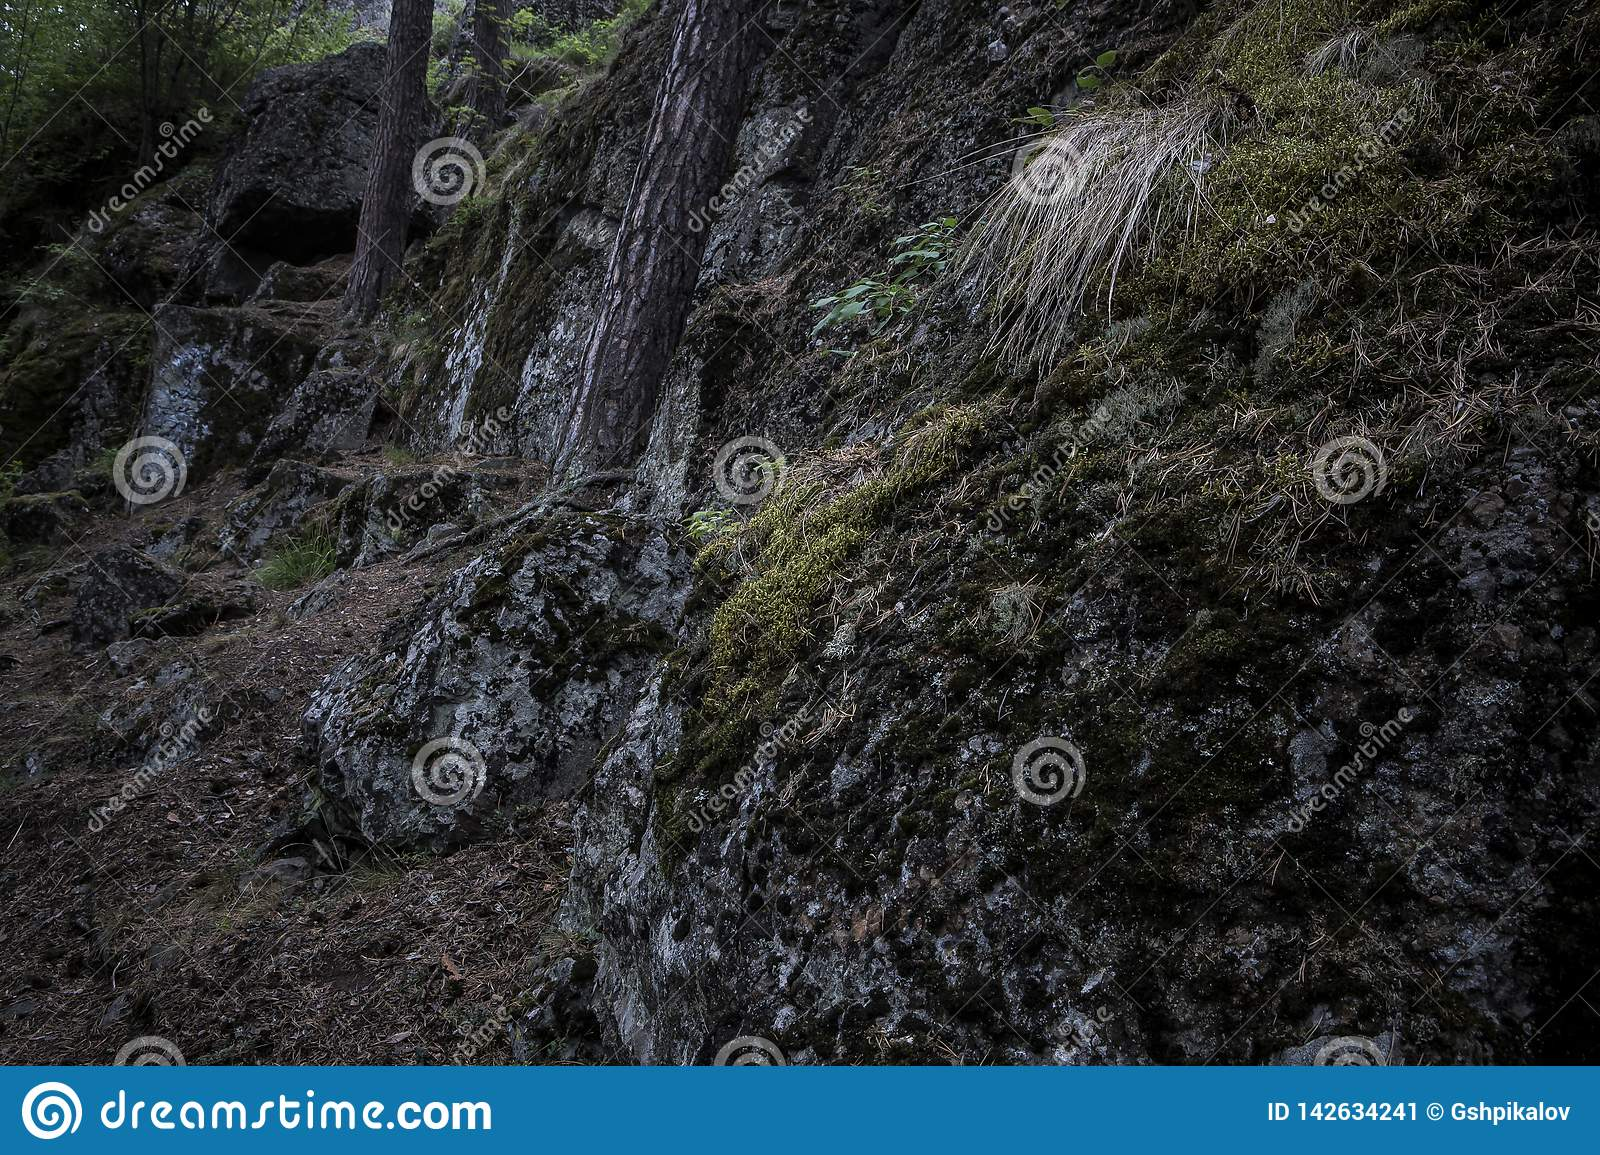 Dark boulders covered in moss in the woods with trees growing up